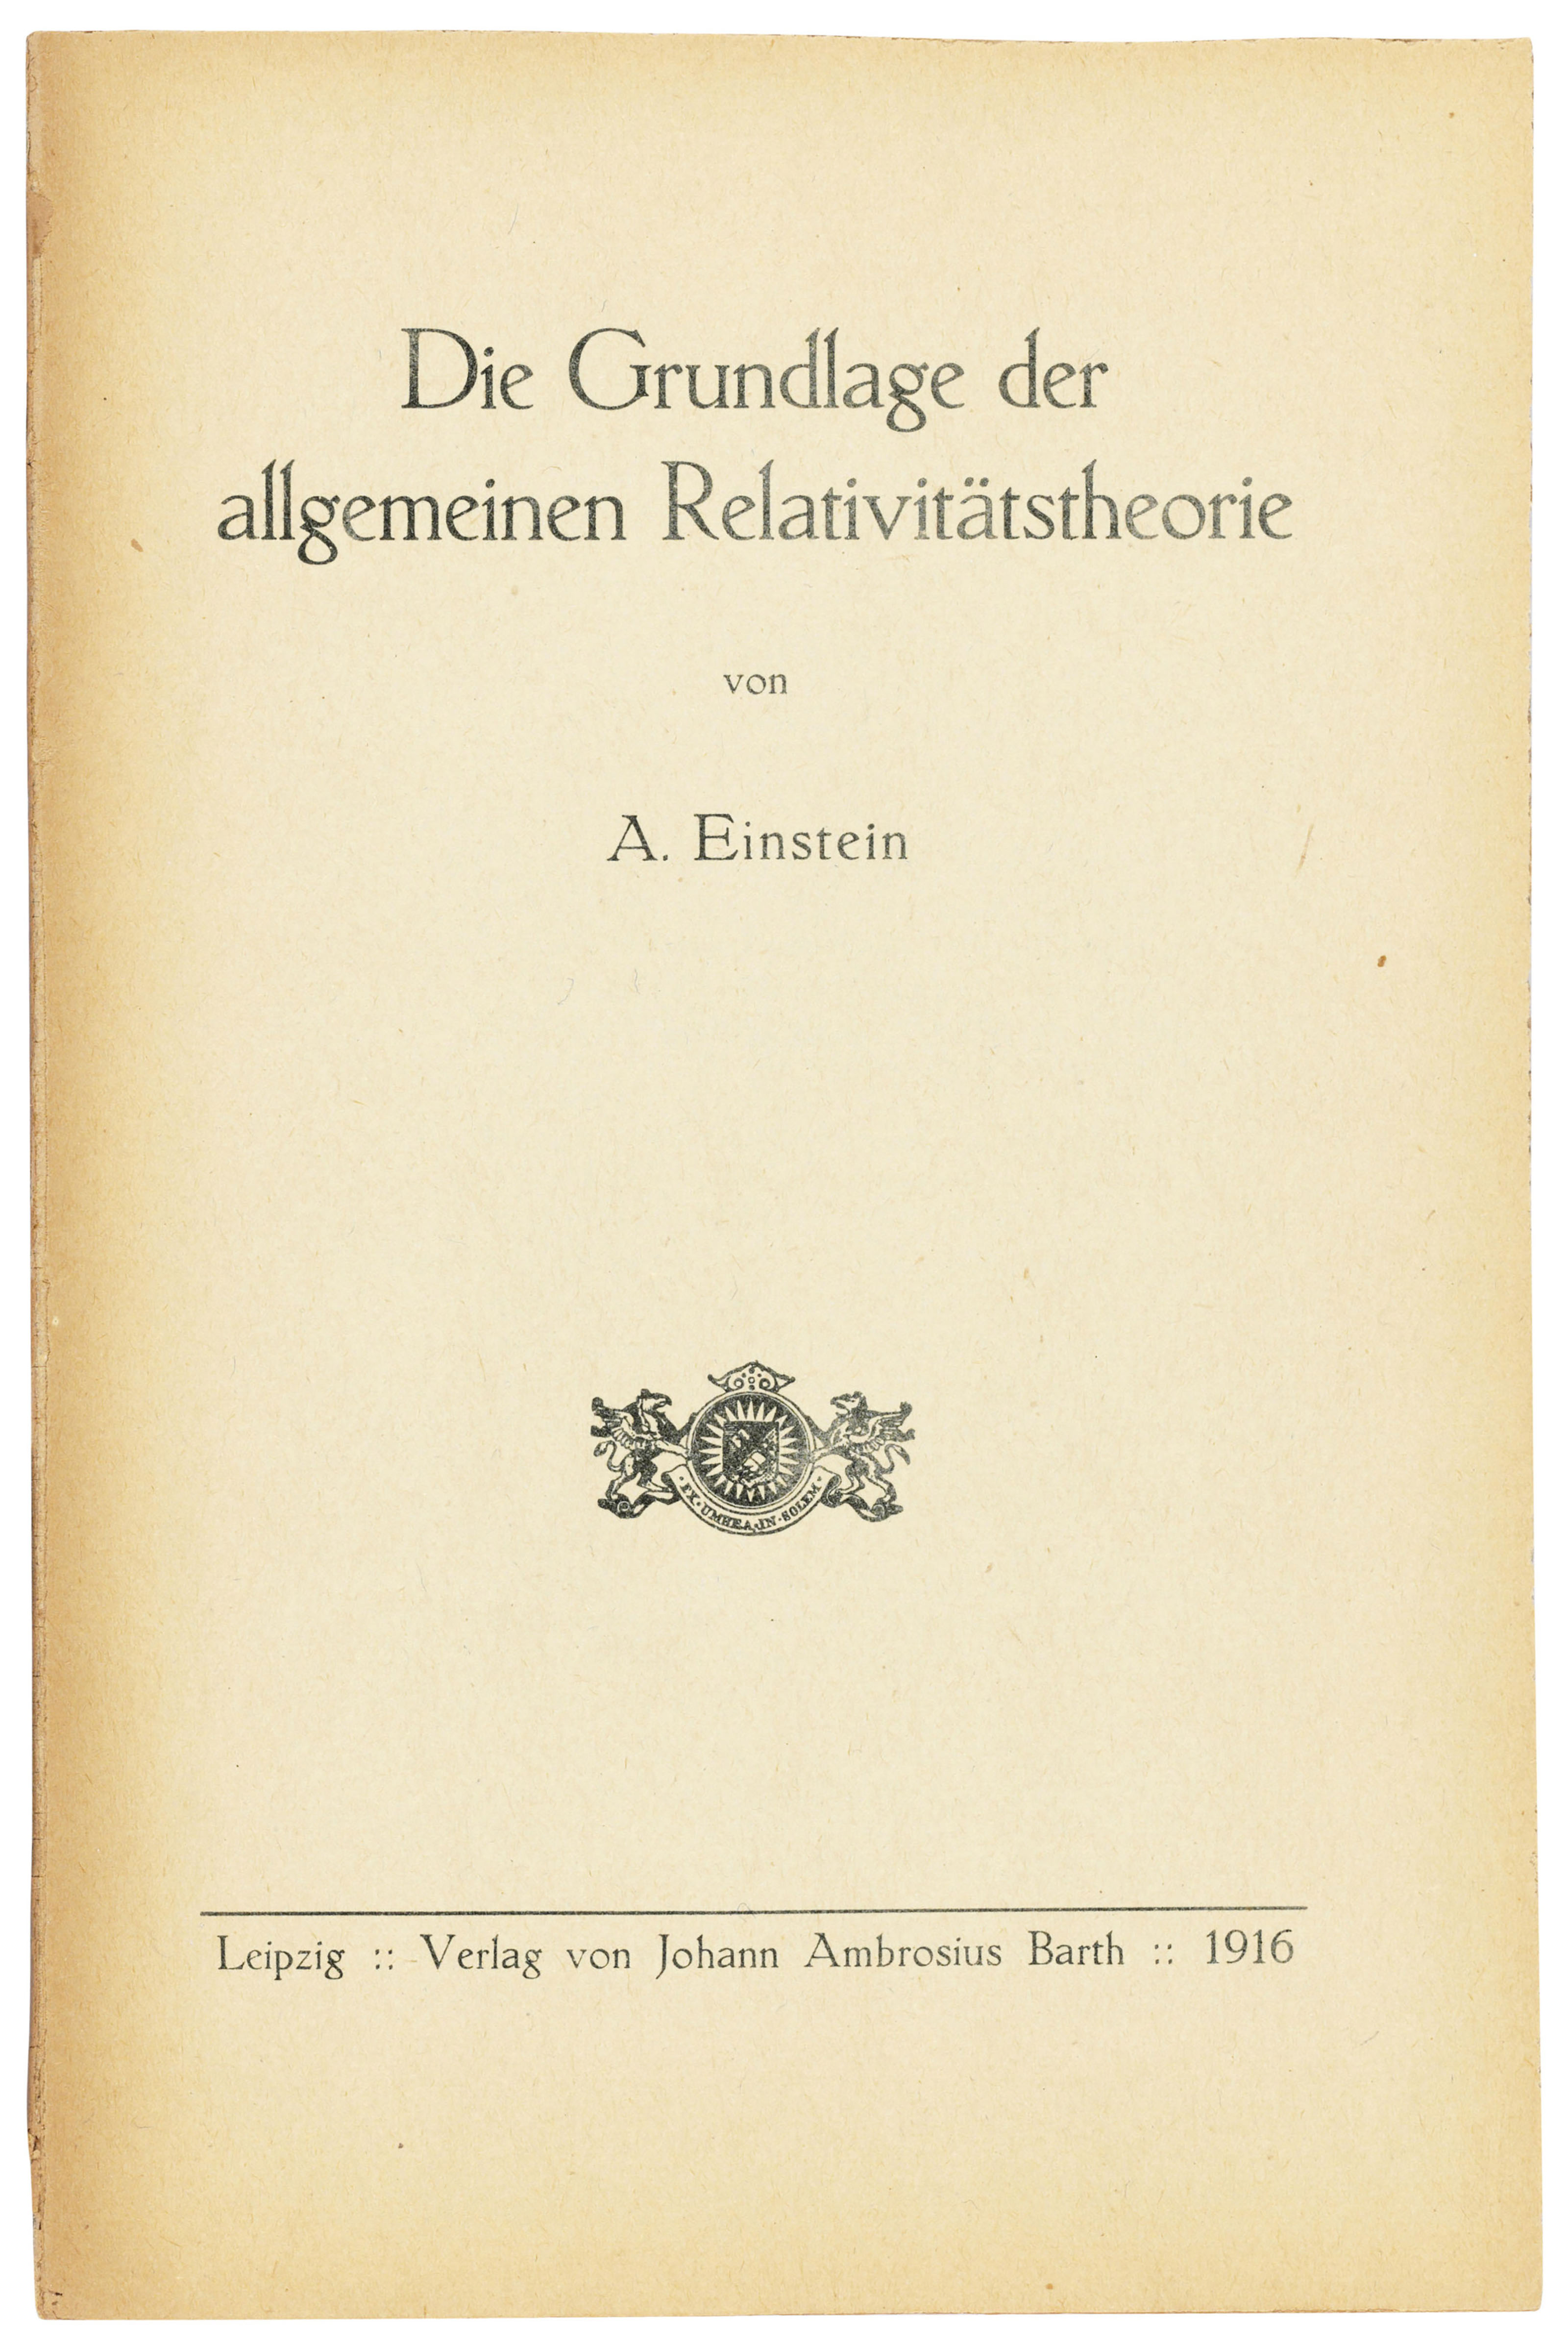 Hans Albert Einstein's copy of his father's greatest contribution to physics